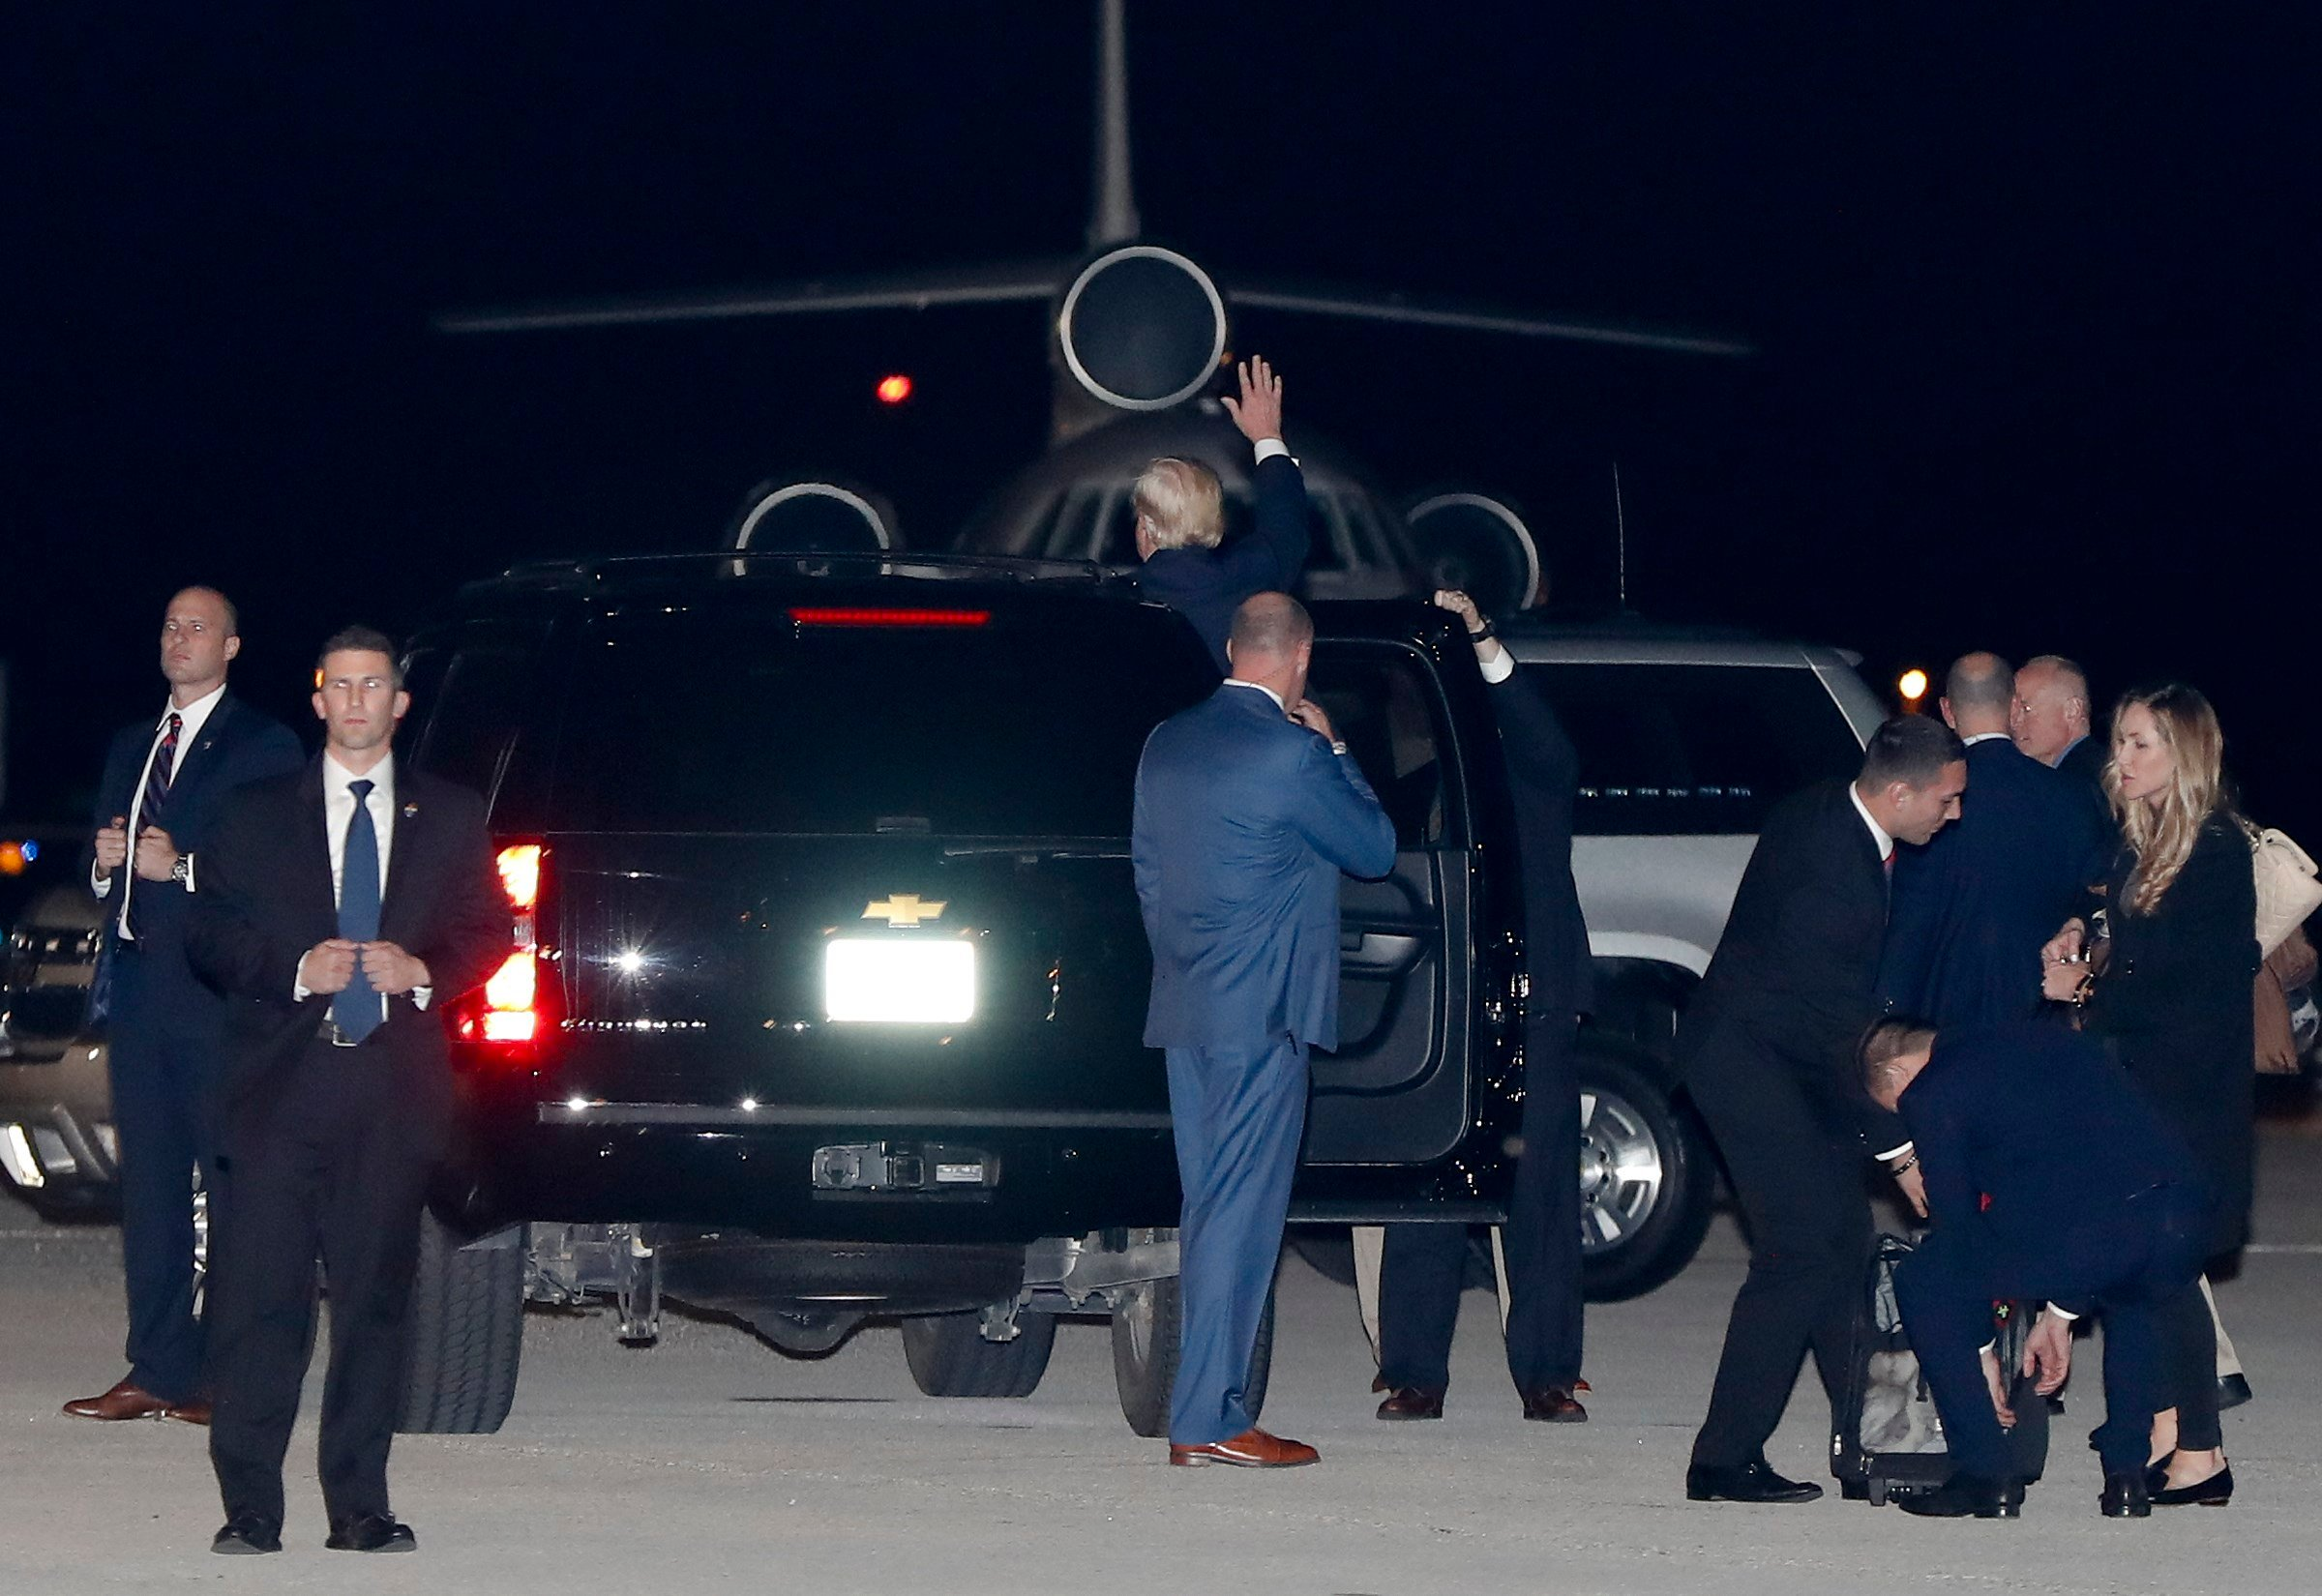 President-elect Trump waves from his motorcade vehicle on the tarmac at Palm Beach International Airport Nov. 22, 2016, in West Palm Beach, Fla., as he arrives from New York, en route to his Mar-a-Lago resort for Thanksgiving. (AP Photo/Carolyn Kaster)